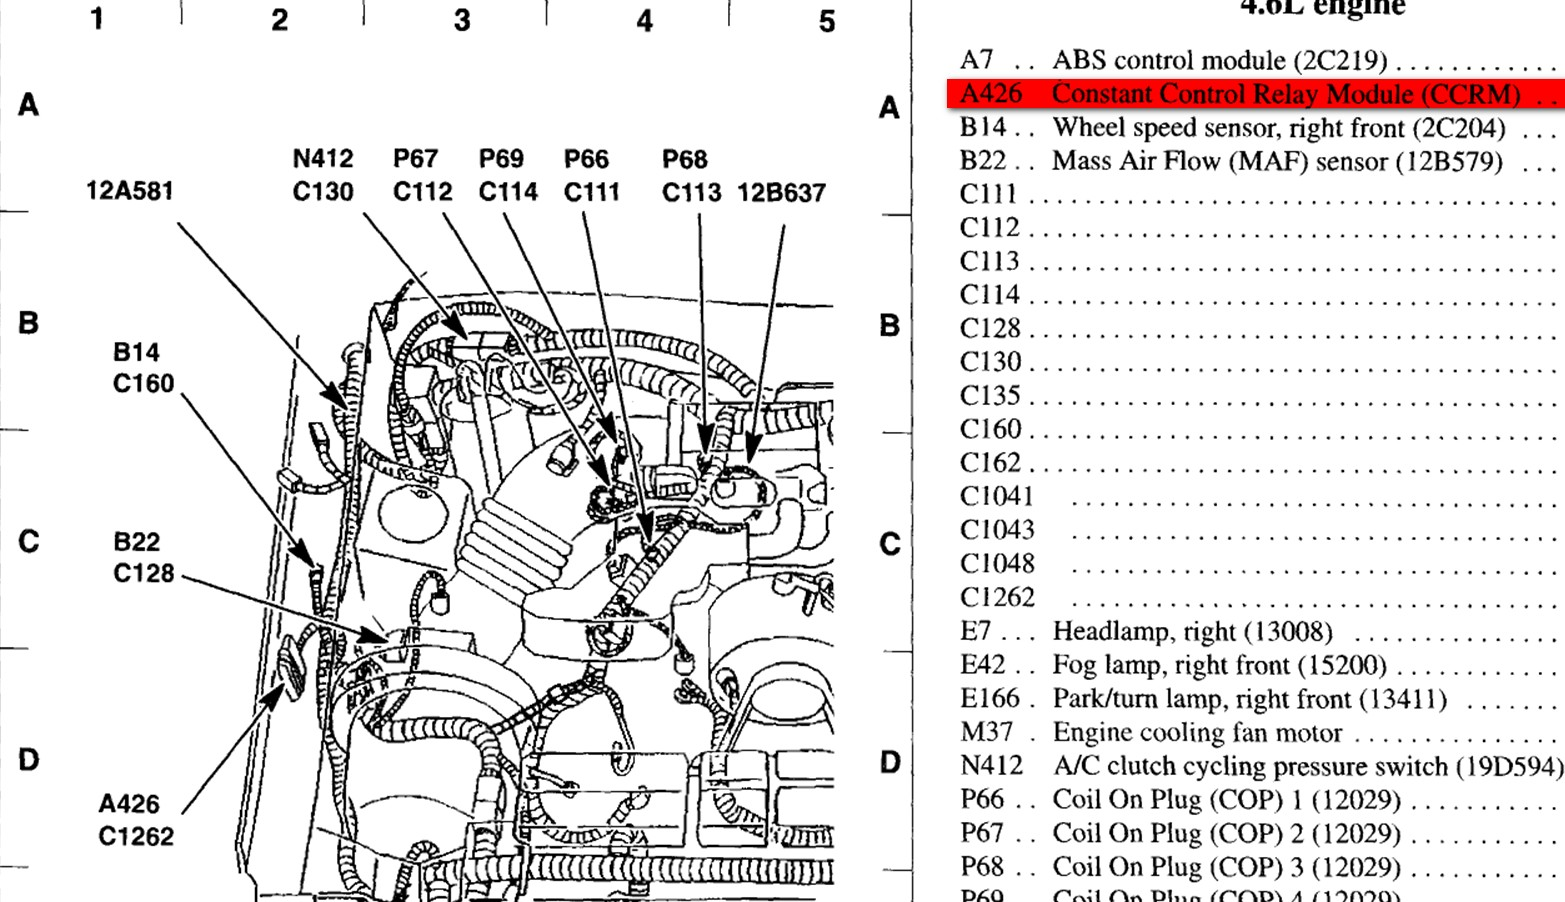 2002 ford mustang fuel pump wiring diagram YWYStGn 2000 ford mustang fuel pump fuse box diagram image details 02 mustang fuse box location at readyjetset.co